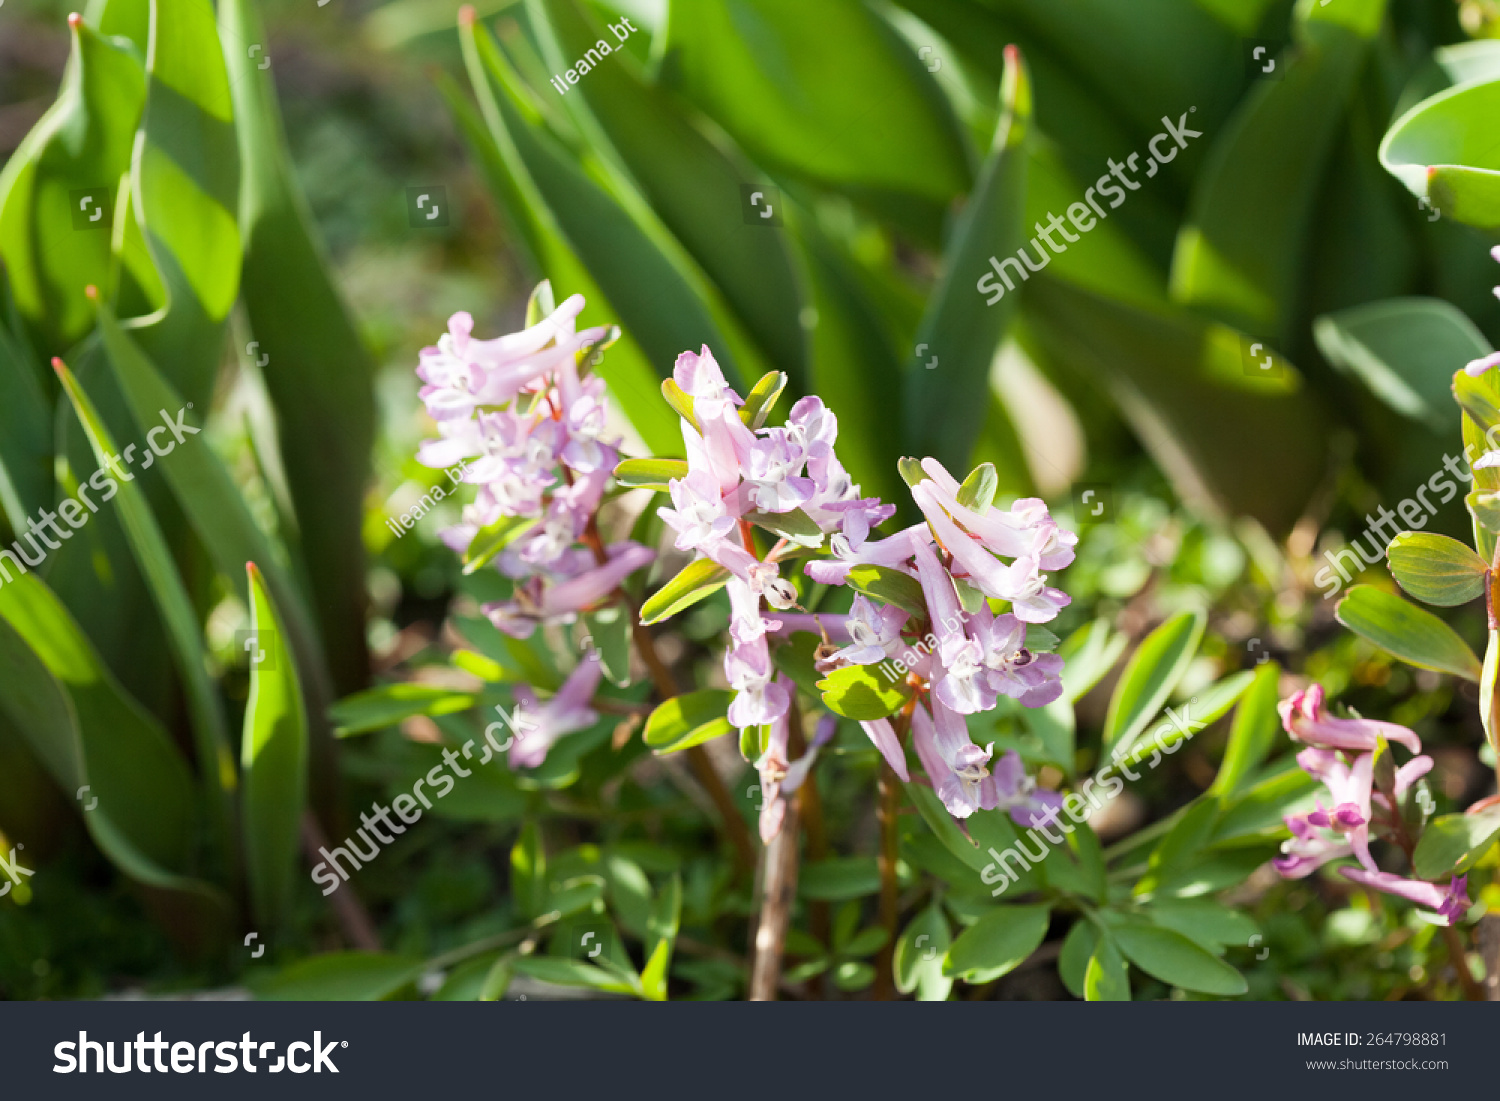 Stagger weed corydalis cava plant purple stock photo edit now stagger weed corydalis cava plant with purple and white flowers with natural background mightylinksfo